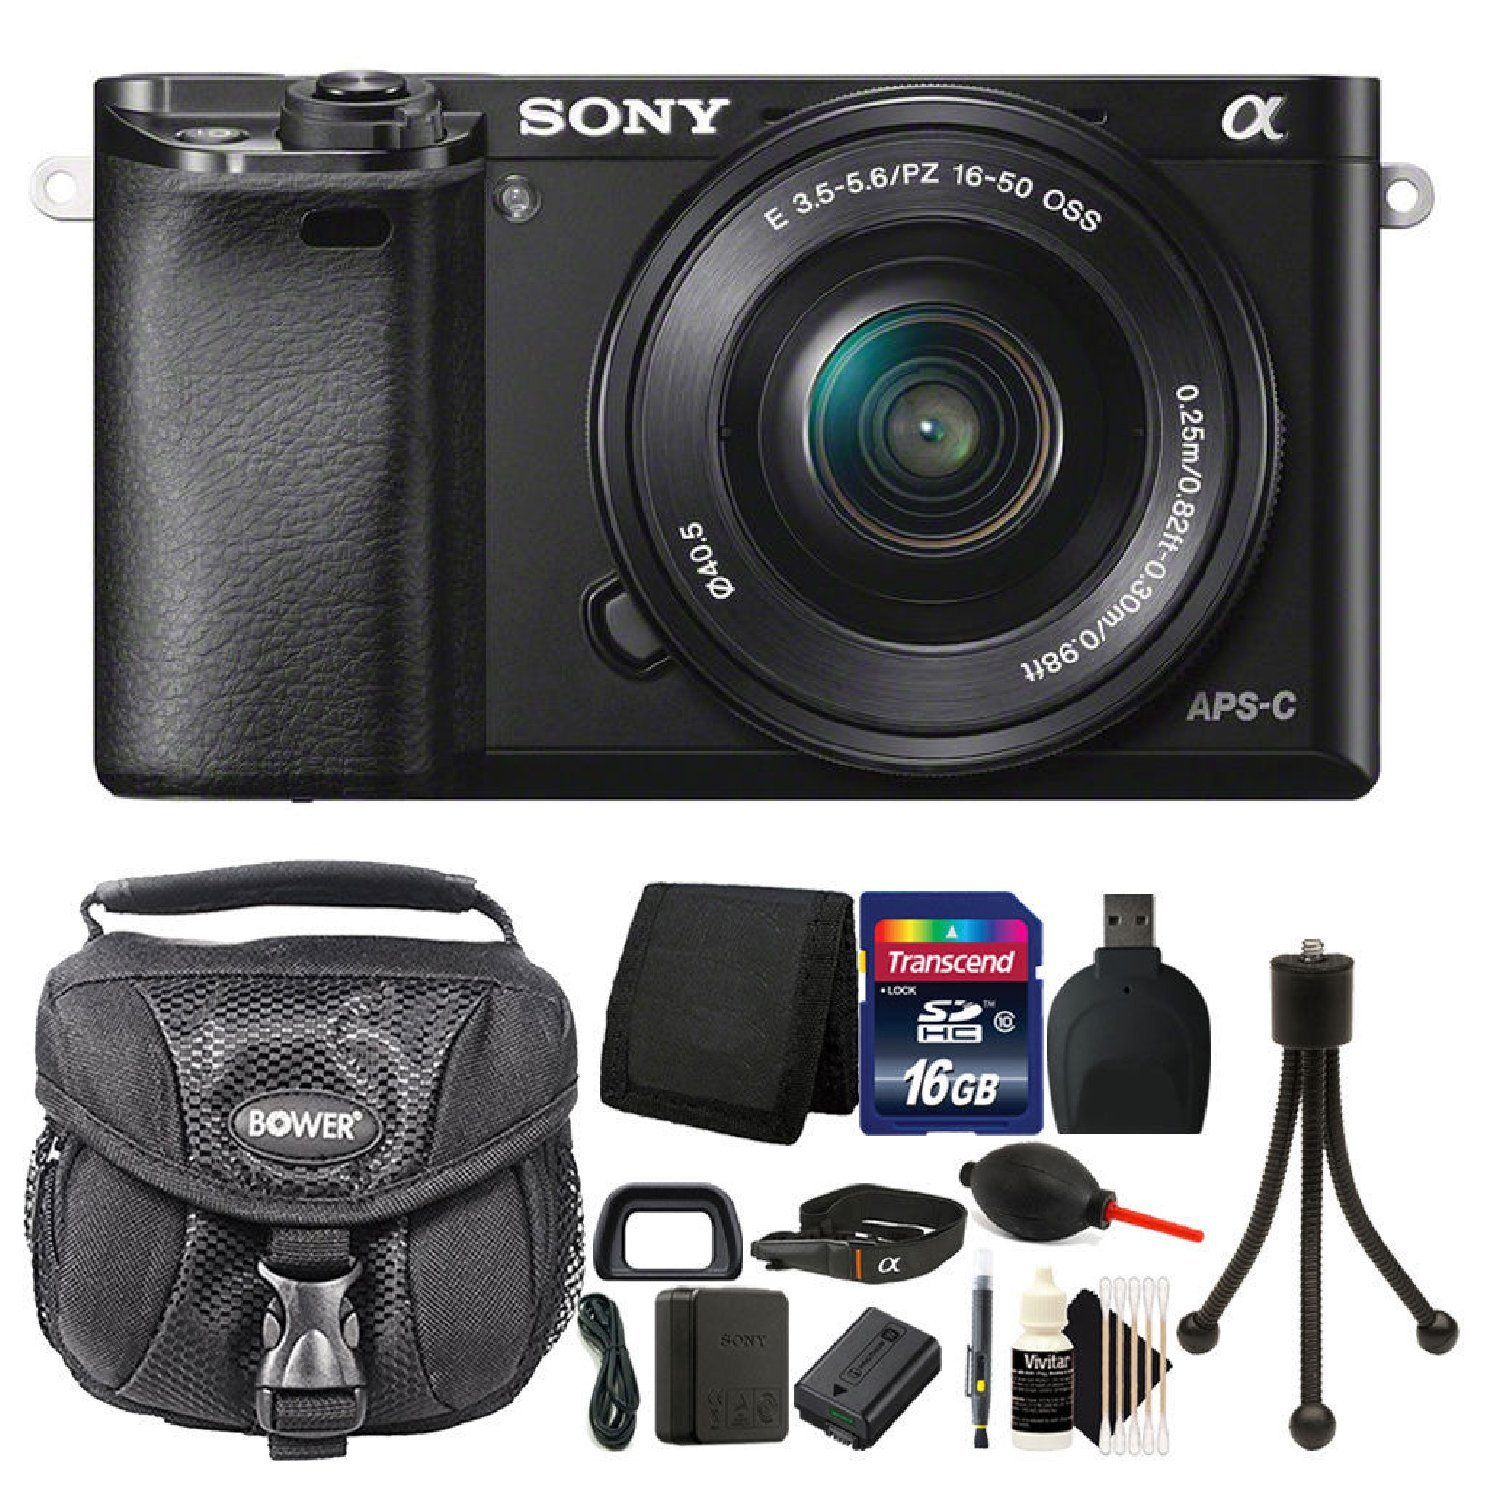 Sony Alpha A6000 24.3MP Mirrorless Digital Camera Full HD 1080p Wifi Enabled with 16-50mm + 16GB Card + Top Accessories